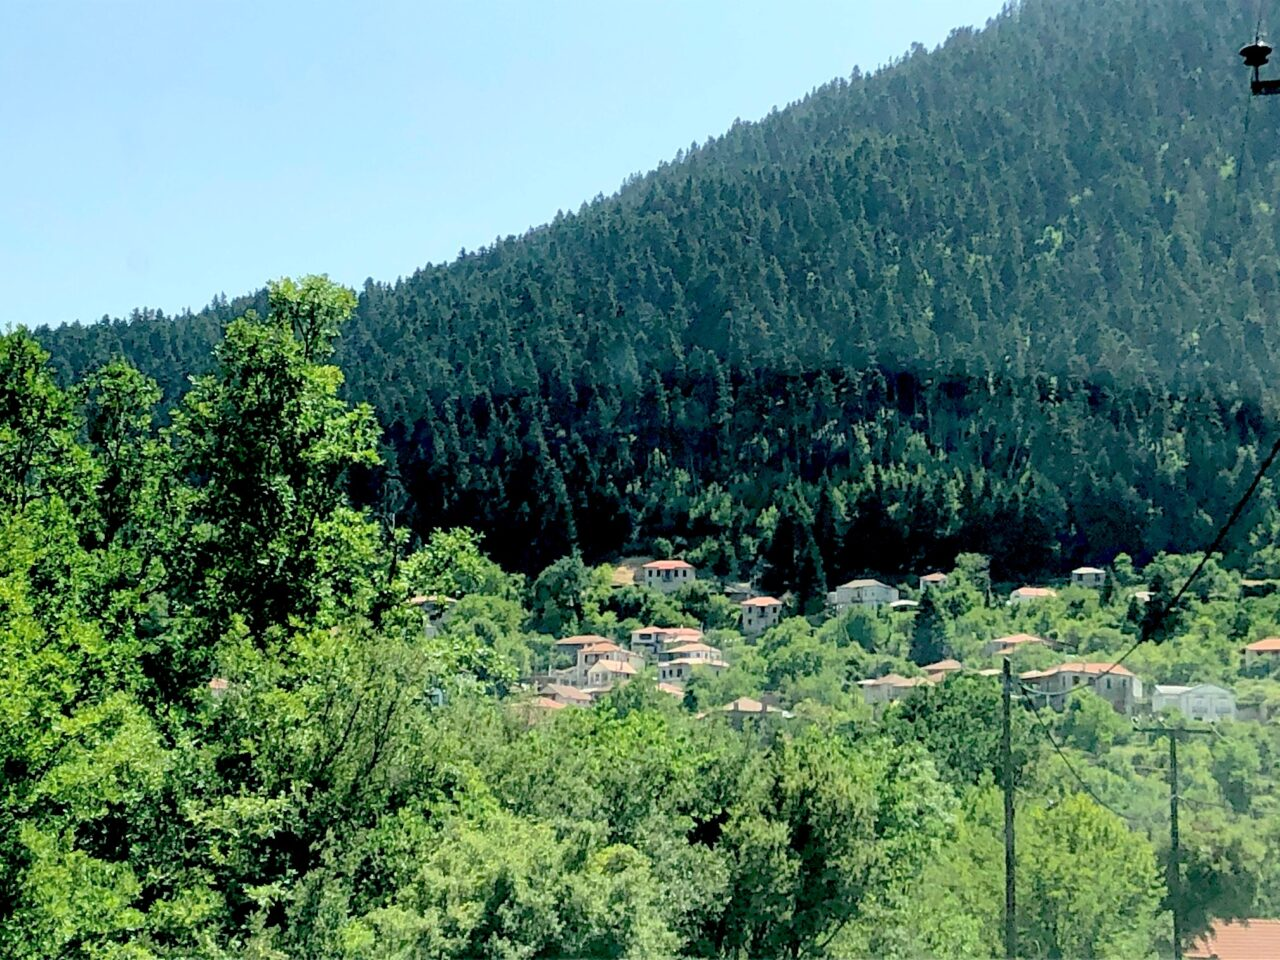 Photo of Mikro Horio in the Mountains From the Personal Collection of Helene and Zaf